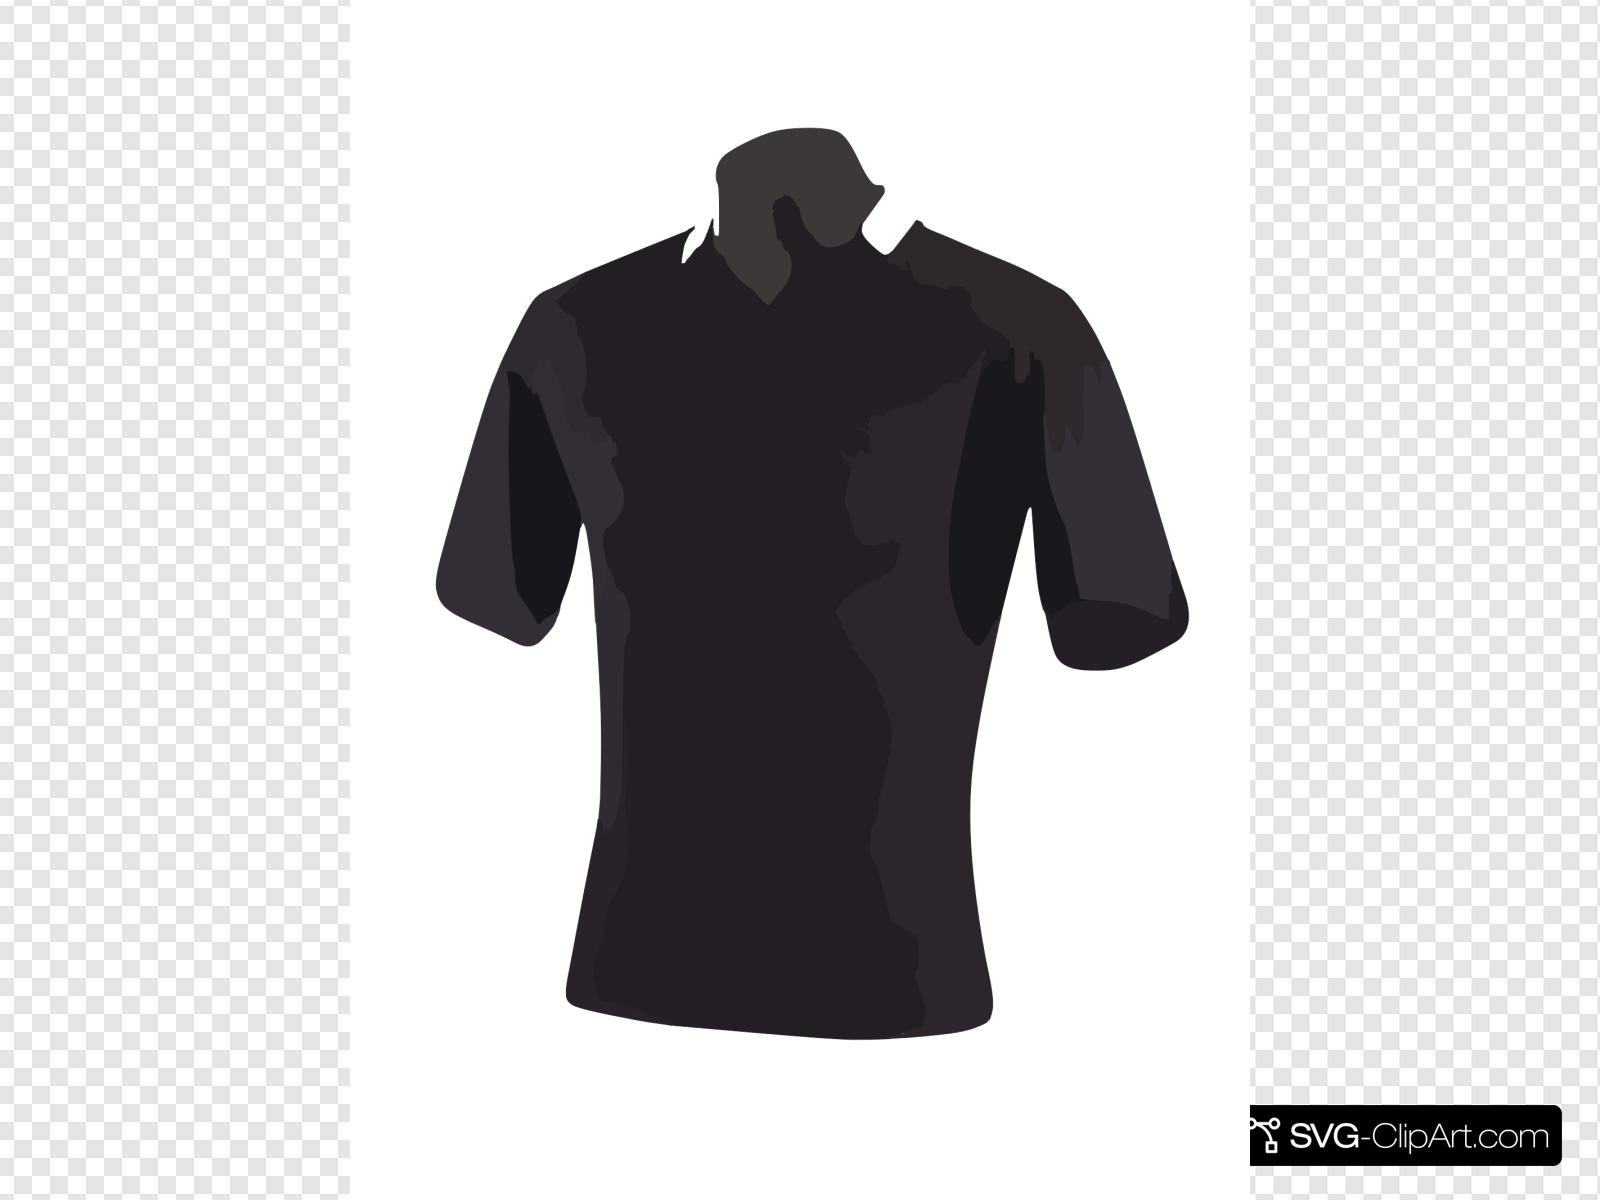 Black Polo Shirt Clip art, Icon and SVG.